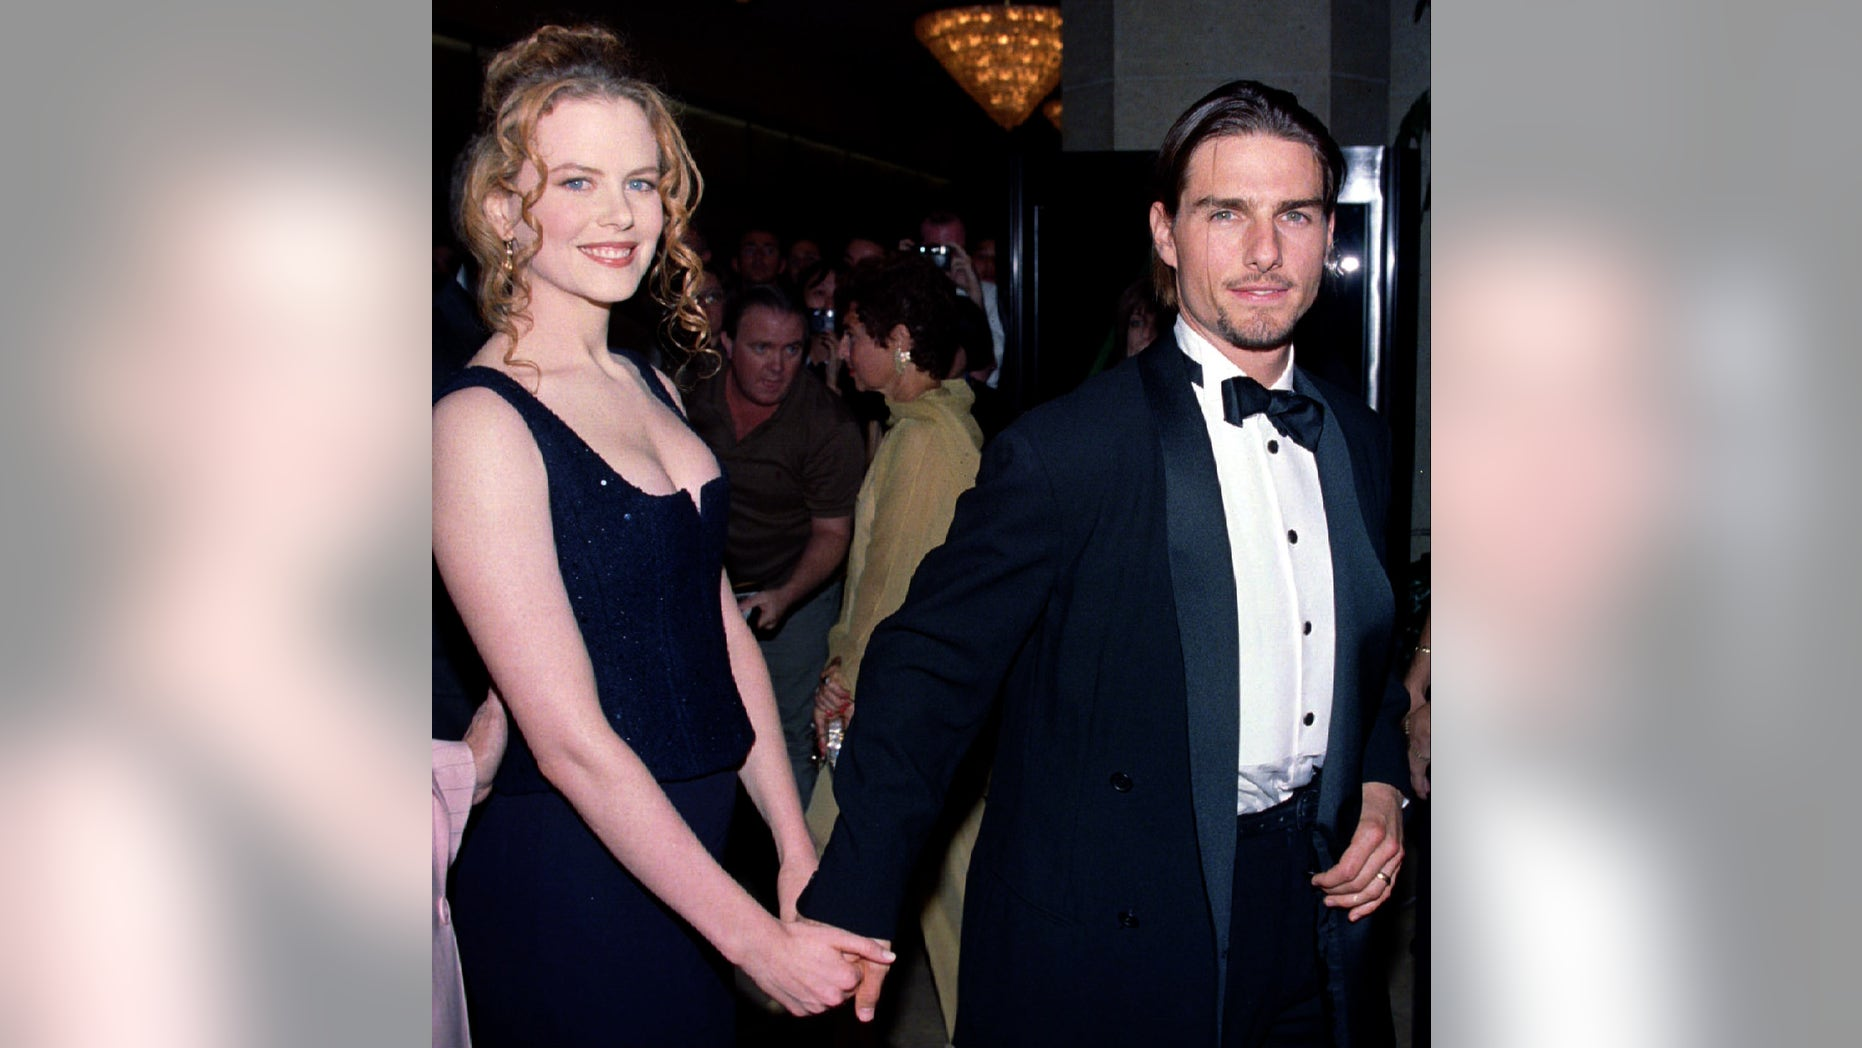 September 10, 1994: Tom Cruise and his then-wife Nicole Kidman arrive for the American Cinematheque's Moving Picture Ball at the Beverly Hilton.